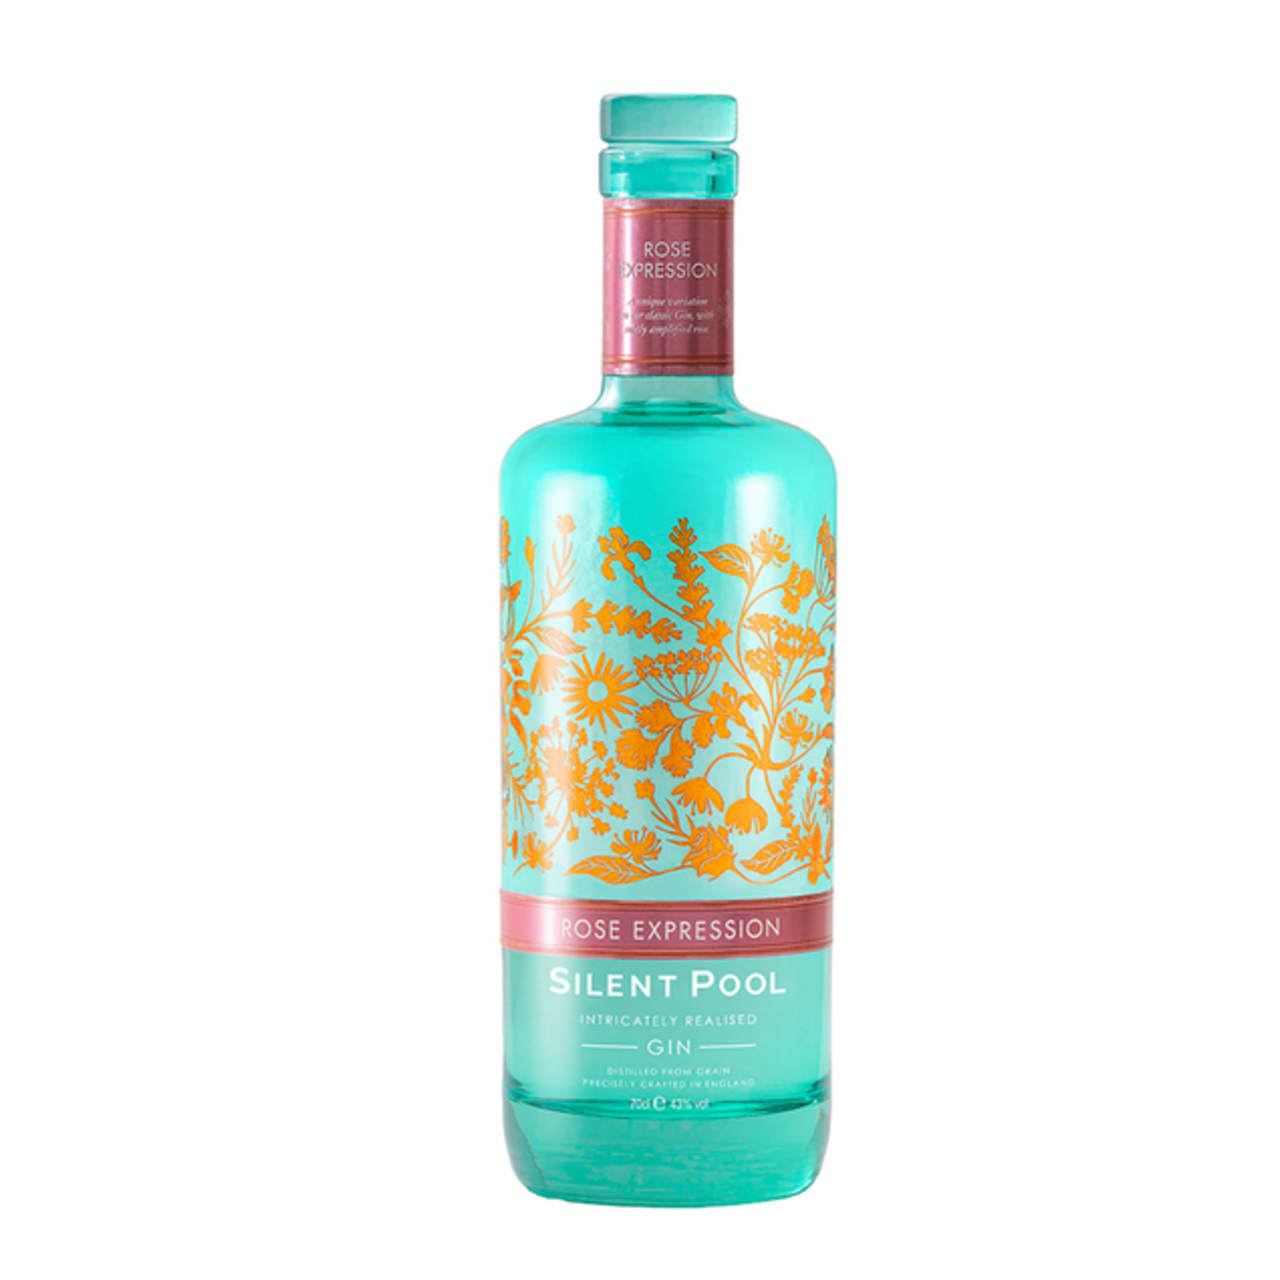 Product Image - Silent Pool Gin Rose Expression